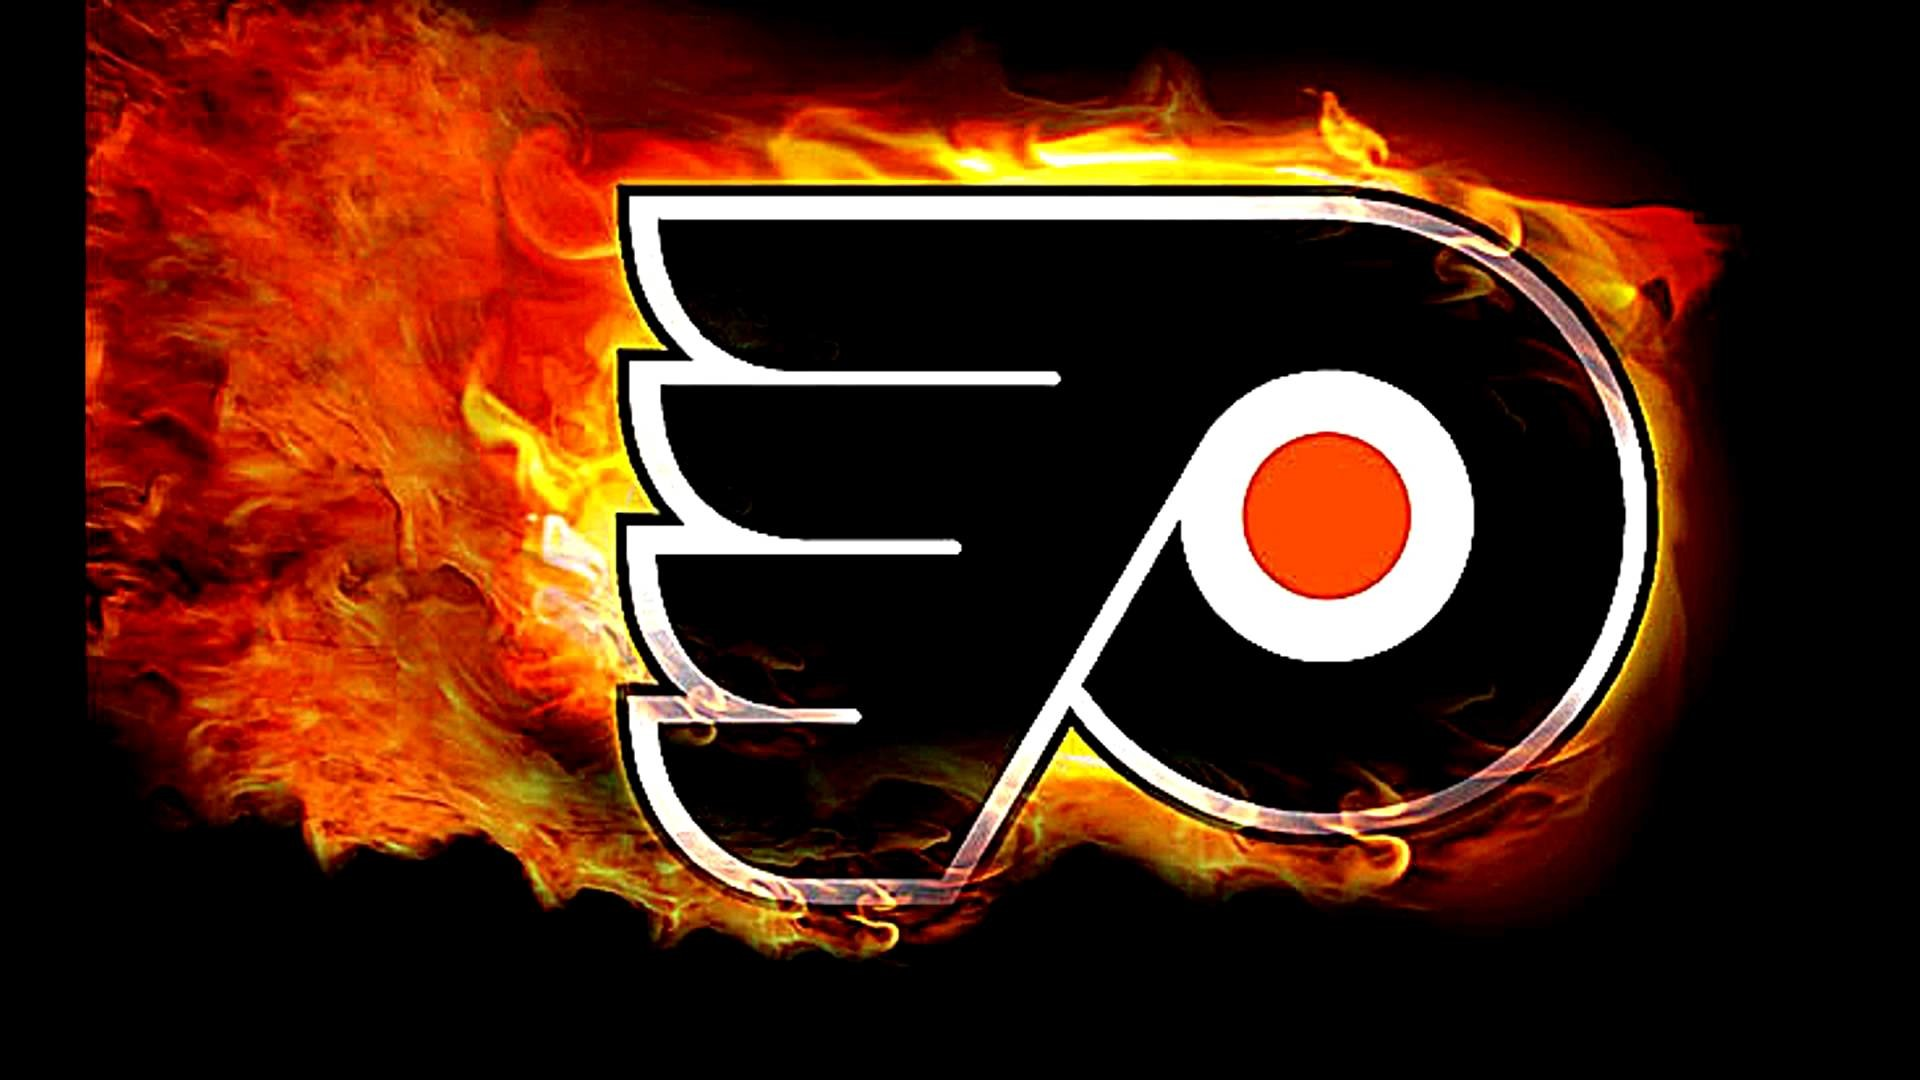 Philadelphia flyers desktop wallpaper wallpapertag - Philadelphia flyers wallpaper ...